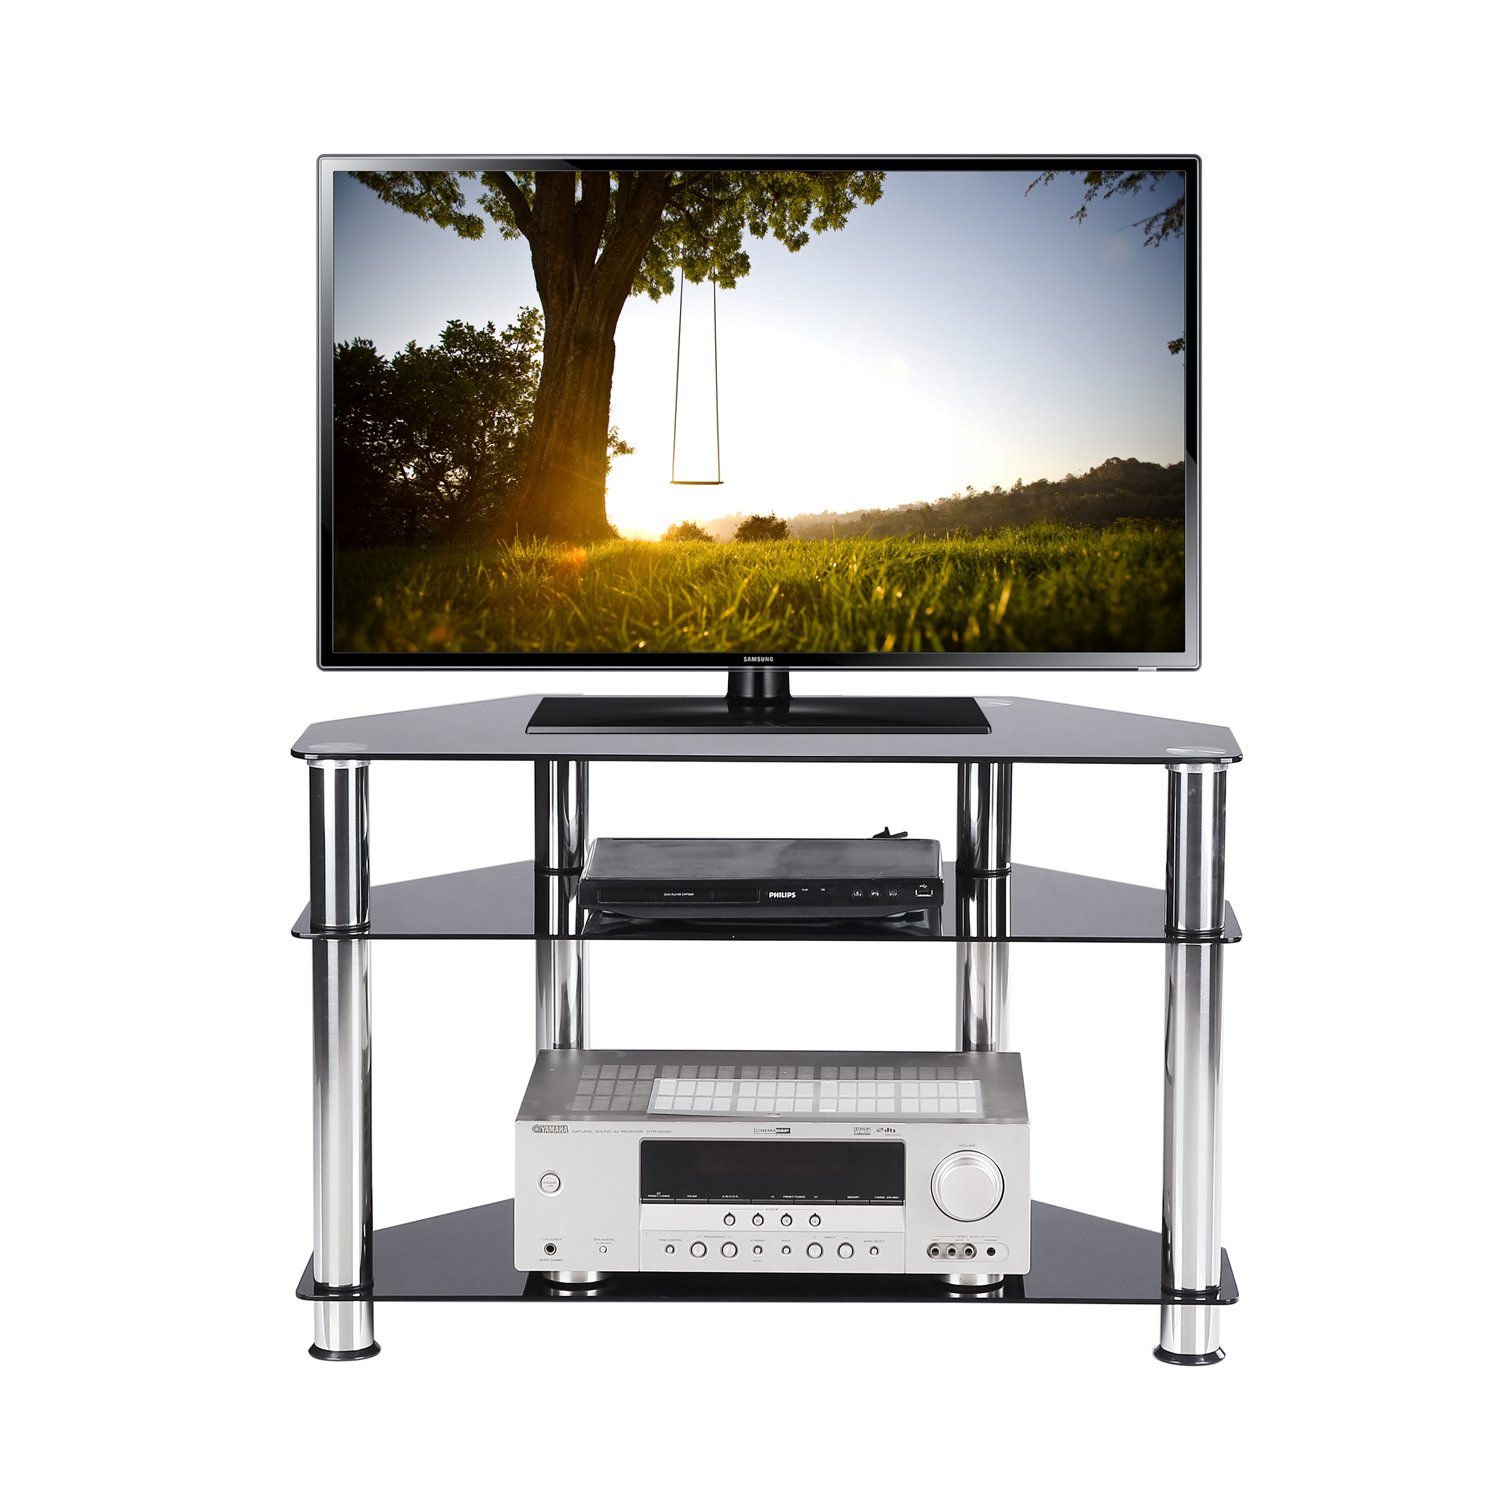 RFIVER Black Tempered Glass Corner TV Stand Chrome Legs 3 Tier Storage Shelves Suit for up to 40 inch LCD, LED Oled TVs TS1002